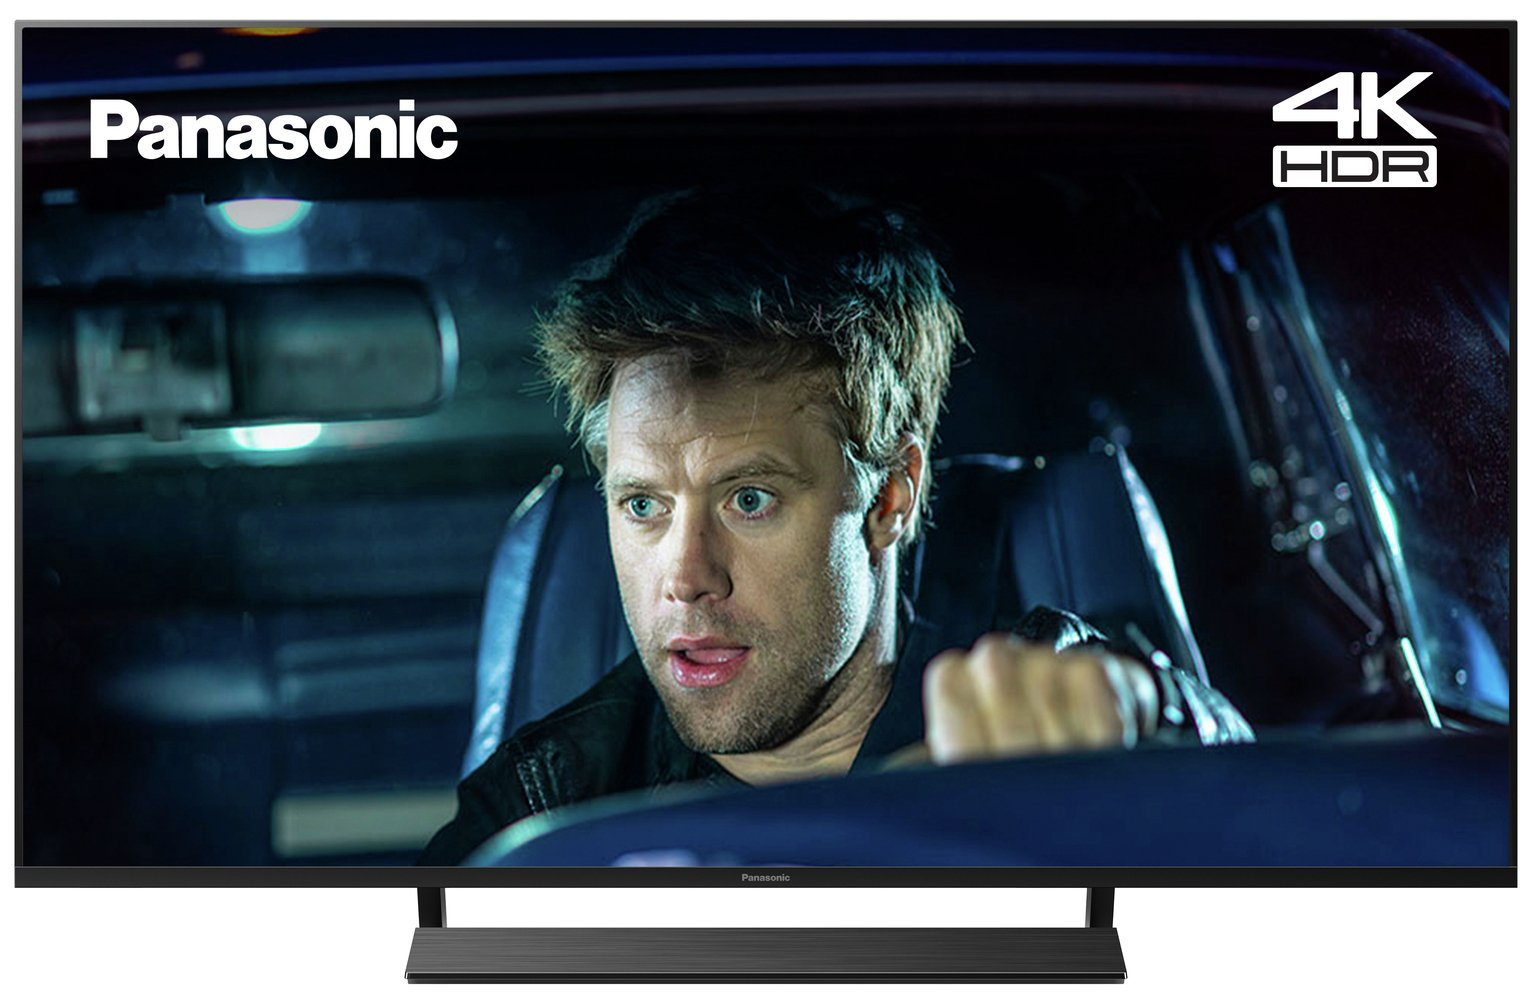 Panasonic 40 Inch TX-40GX800B Smart 4K Ultra HD LED TV